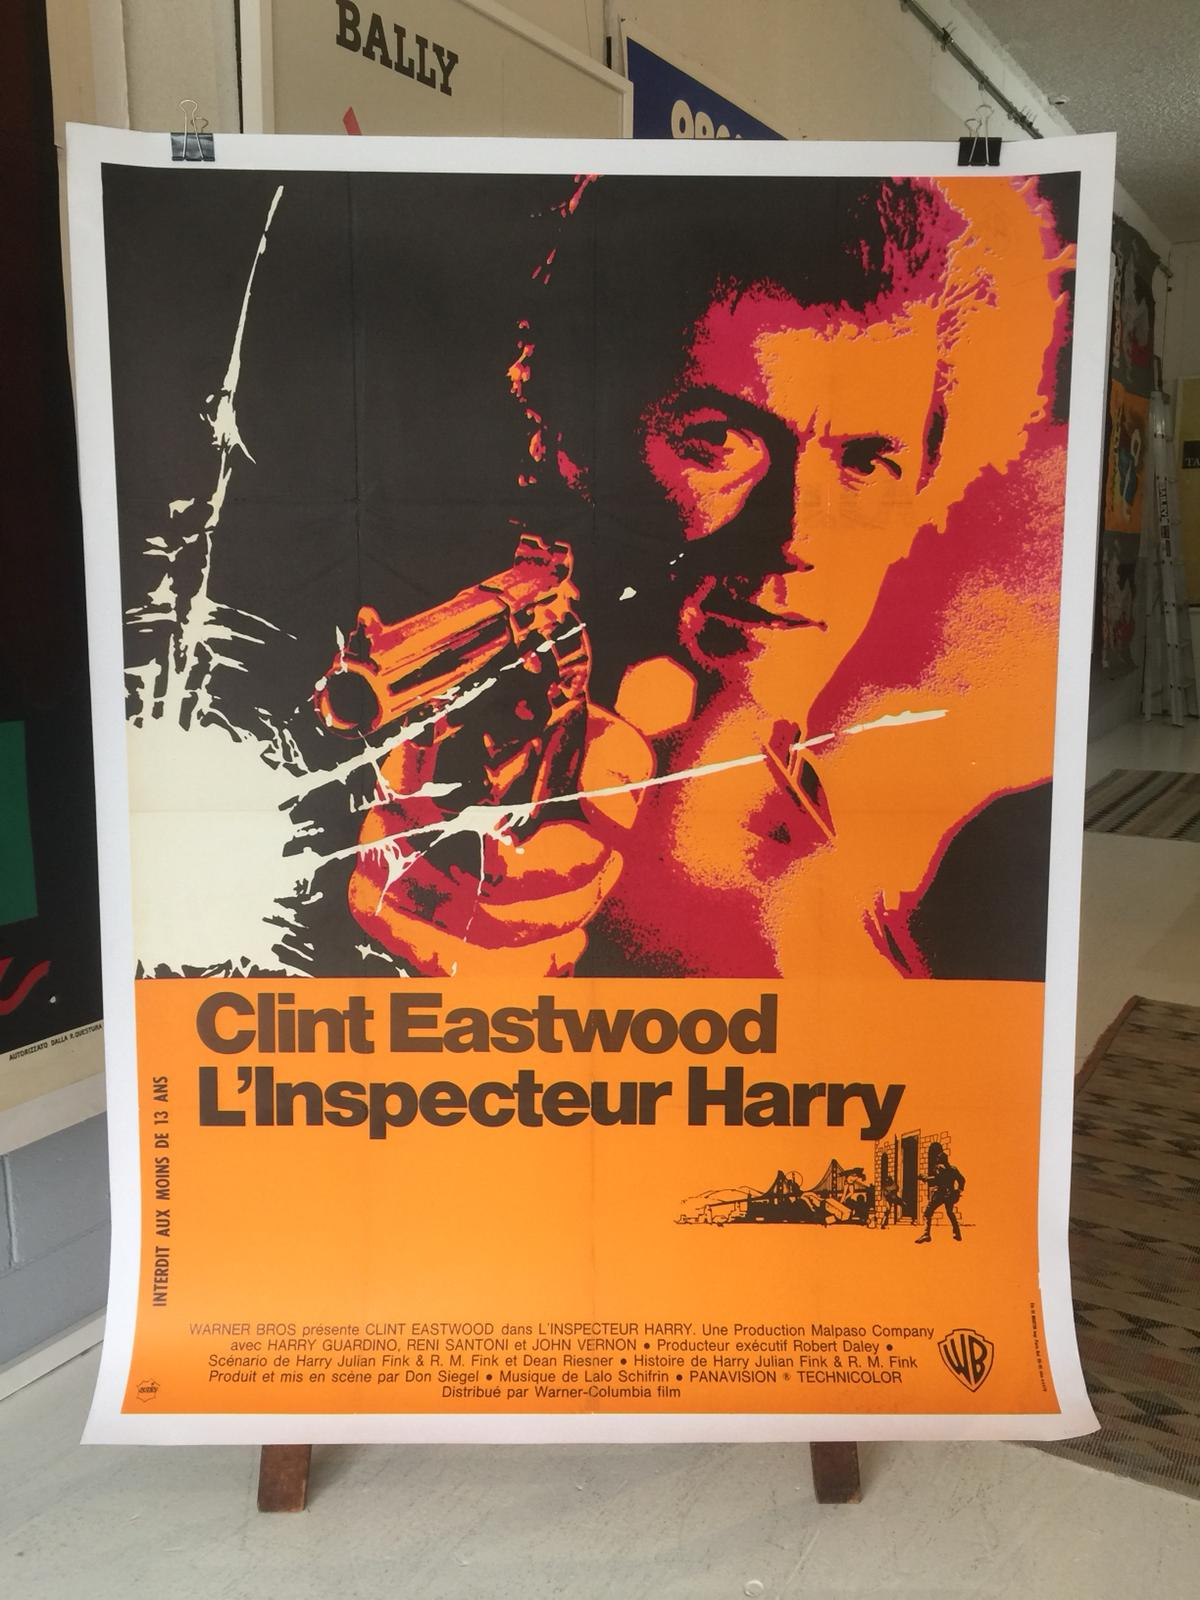 Dirty Harry Original Film Poster